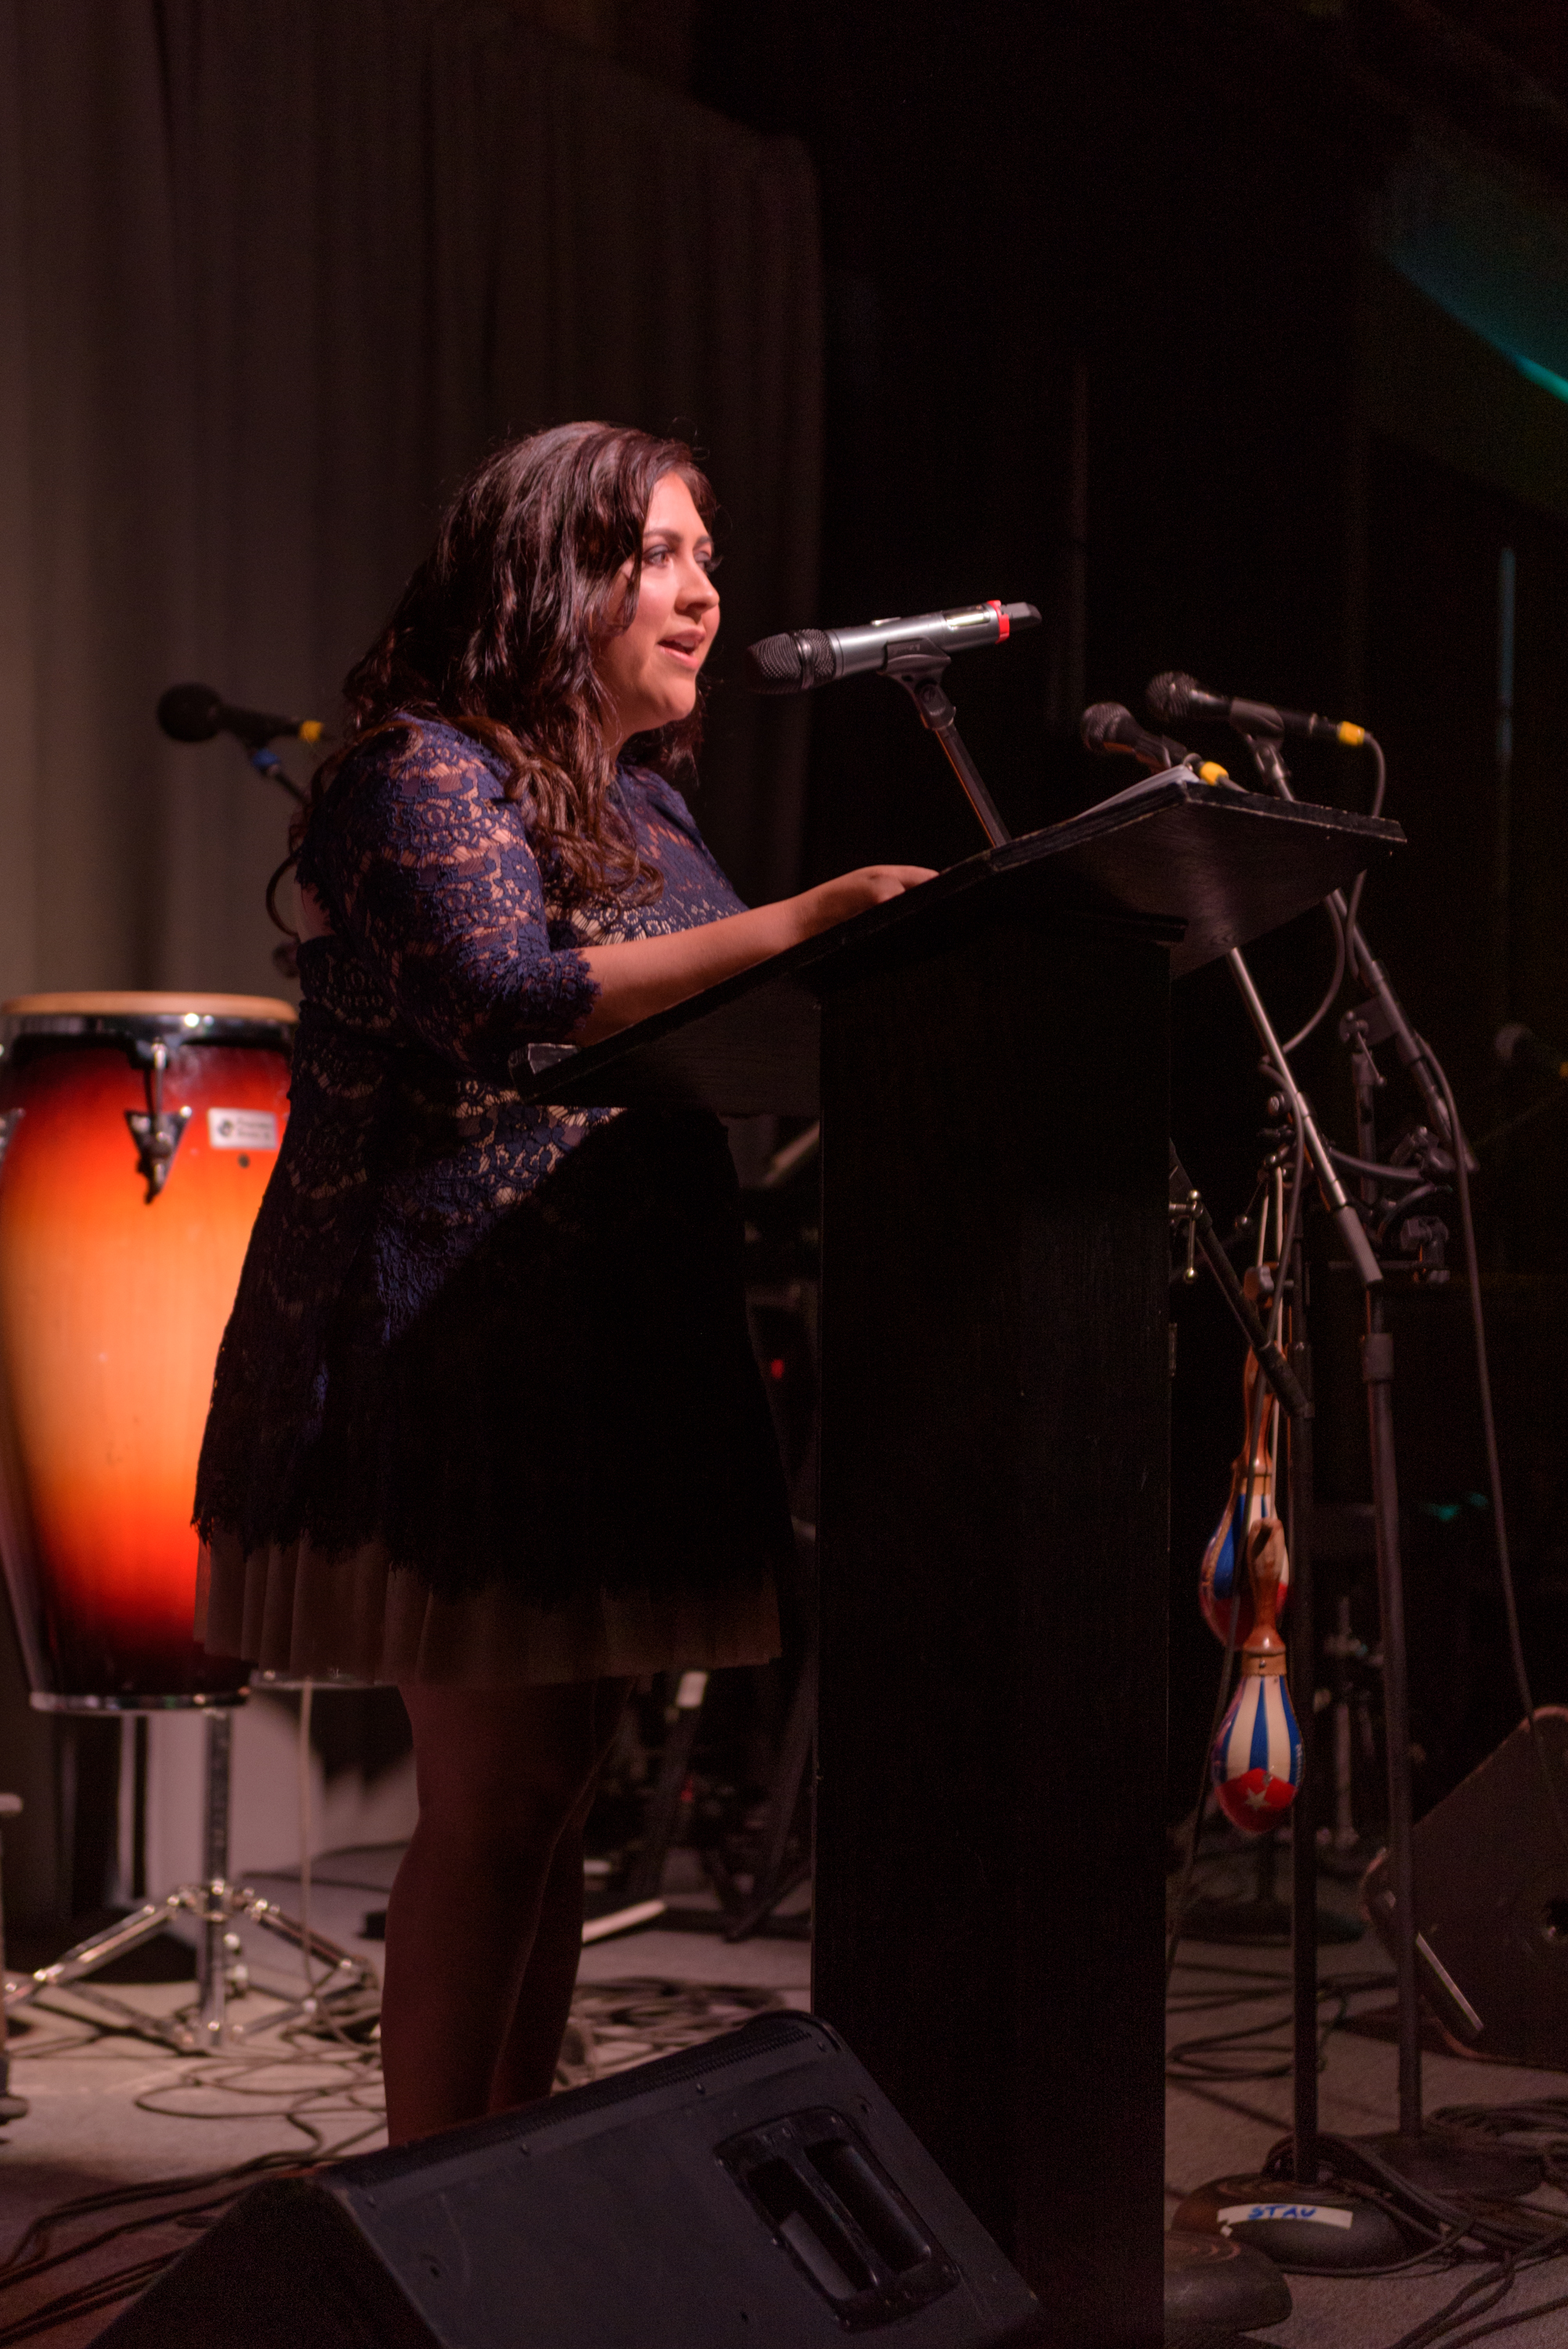 Executive Director Carmen Rubio spoke of the positive growth and transformation of the Latino community at Noche Bella.